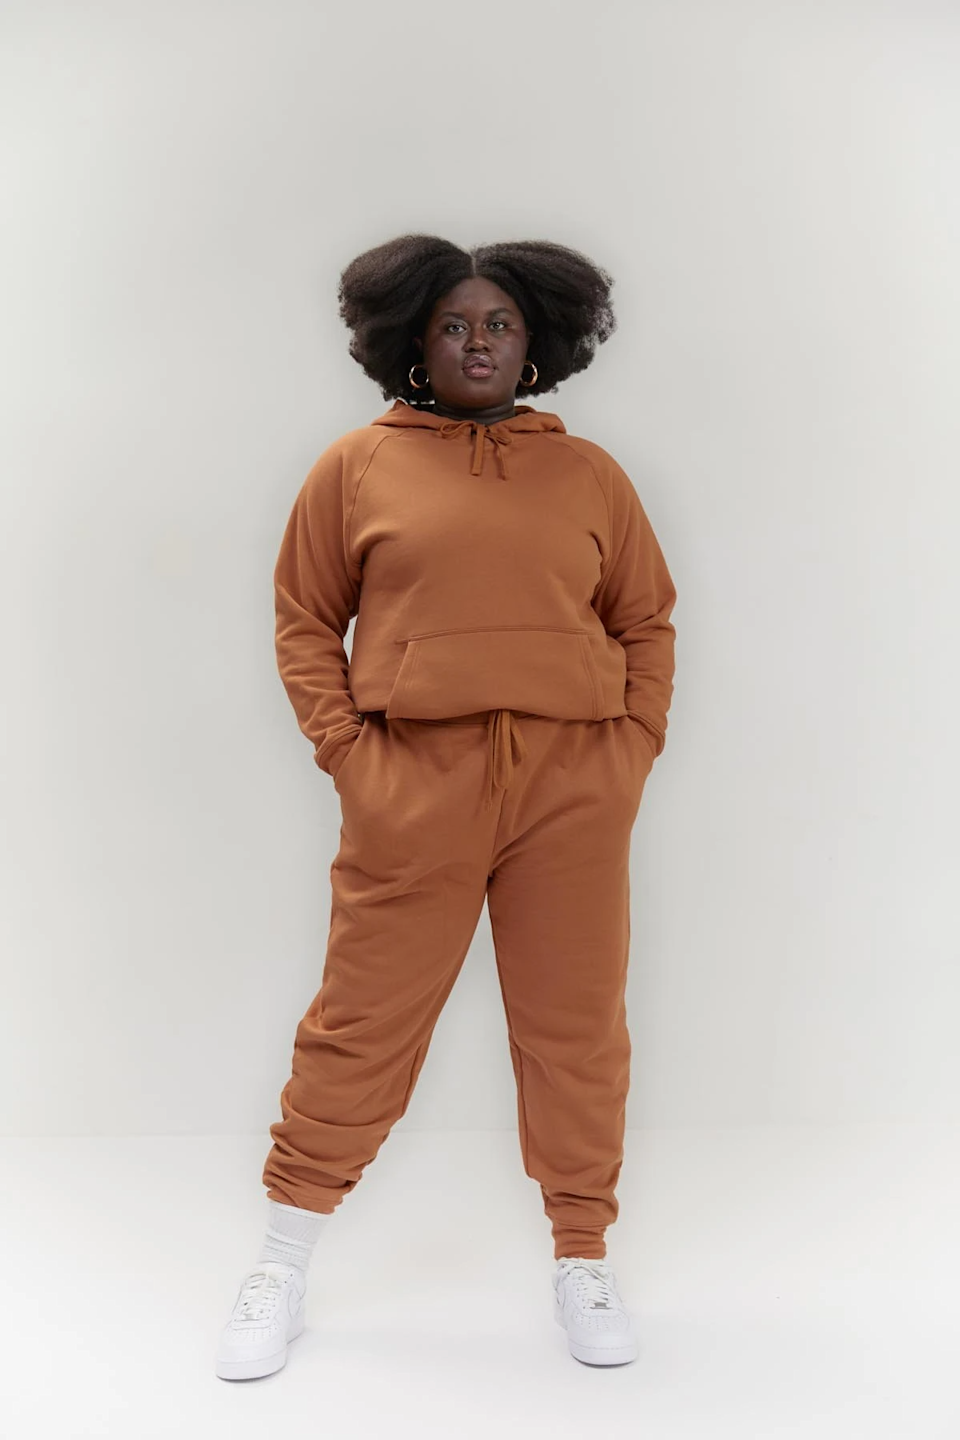 "<h3>Girlfriend Collective</h3><br>Check out the brand new unisex sweatsuits in the <a href=""https://www.girlfriend.com/collections/for-everyone"" rel=""nofollow noopener"" target=""_blank"" data-ylk=""slk:For Everyone Collection"" class=""link rapid-noclick-resp"">For Everyone Collection</a> from the sustainable activewear company we know and love. Made with 50% recycled cotton and 50% organic cotton, this is a purchase we know you'll feel good about. <br><br><em>Shop </em><a href=""https://www.girlfriend.com/"" rel=""nofollow noopener"" target=""_blank"" data-ylk=""slk:Girlfriend Collective"" class=""link rapid-noclick-resp""><strong><em>Girlfriend Collective</em></strong></a><br><br><strong>Girlfriend Collective</strong> Everyone Hoodie, $, available at <a href=""https://go.skimresources.com/?id=30283X879131&url=https%3A%2F%2Fwww.girlfriend.com%2Fcollections%2Ffor-everyone%2Fproducts%2Fchai-everyone-hoodie"" rel=""nofollow noopener"" target=""_blank"" data-ylk=""slk:Girlfriend"" class=""link rapid-noclick-resp"">Girlfriend</a><br><br><strong>Girlfriend Collective</strong> Everyone Mid-Rise Jogger, $, available at <a href=""https://go.skimresources.com/?id=30283X879131&url=https%3A%2F%2Fwww.girlfriend.com%2Fproducts%2Fchai-everyone-mid-rise-jogger"" rel=""nofollow noopener"" target=""_blank"" data-ylk=""slk:Girlfriend"" class=""link rapid-noclick-resp"">Girlfriend</a>"